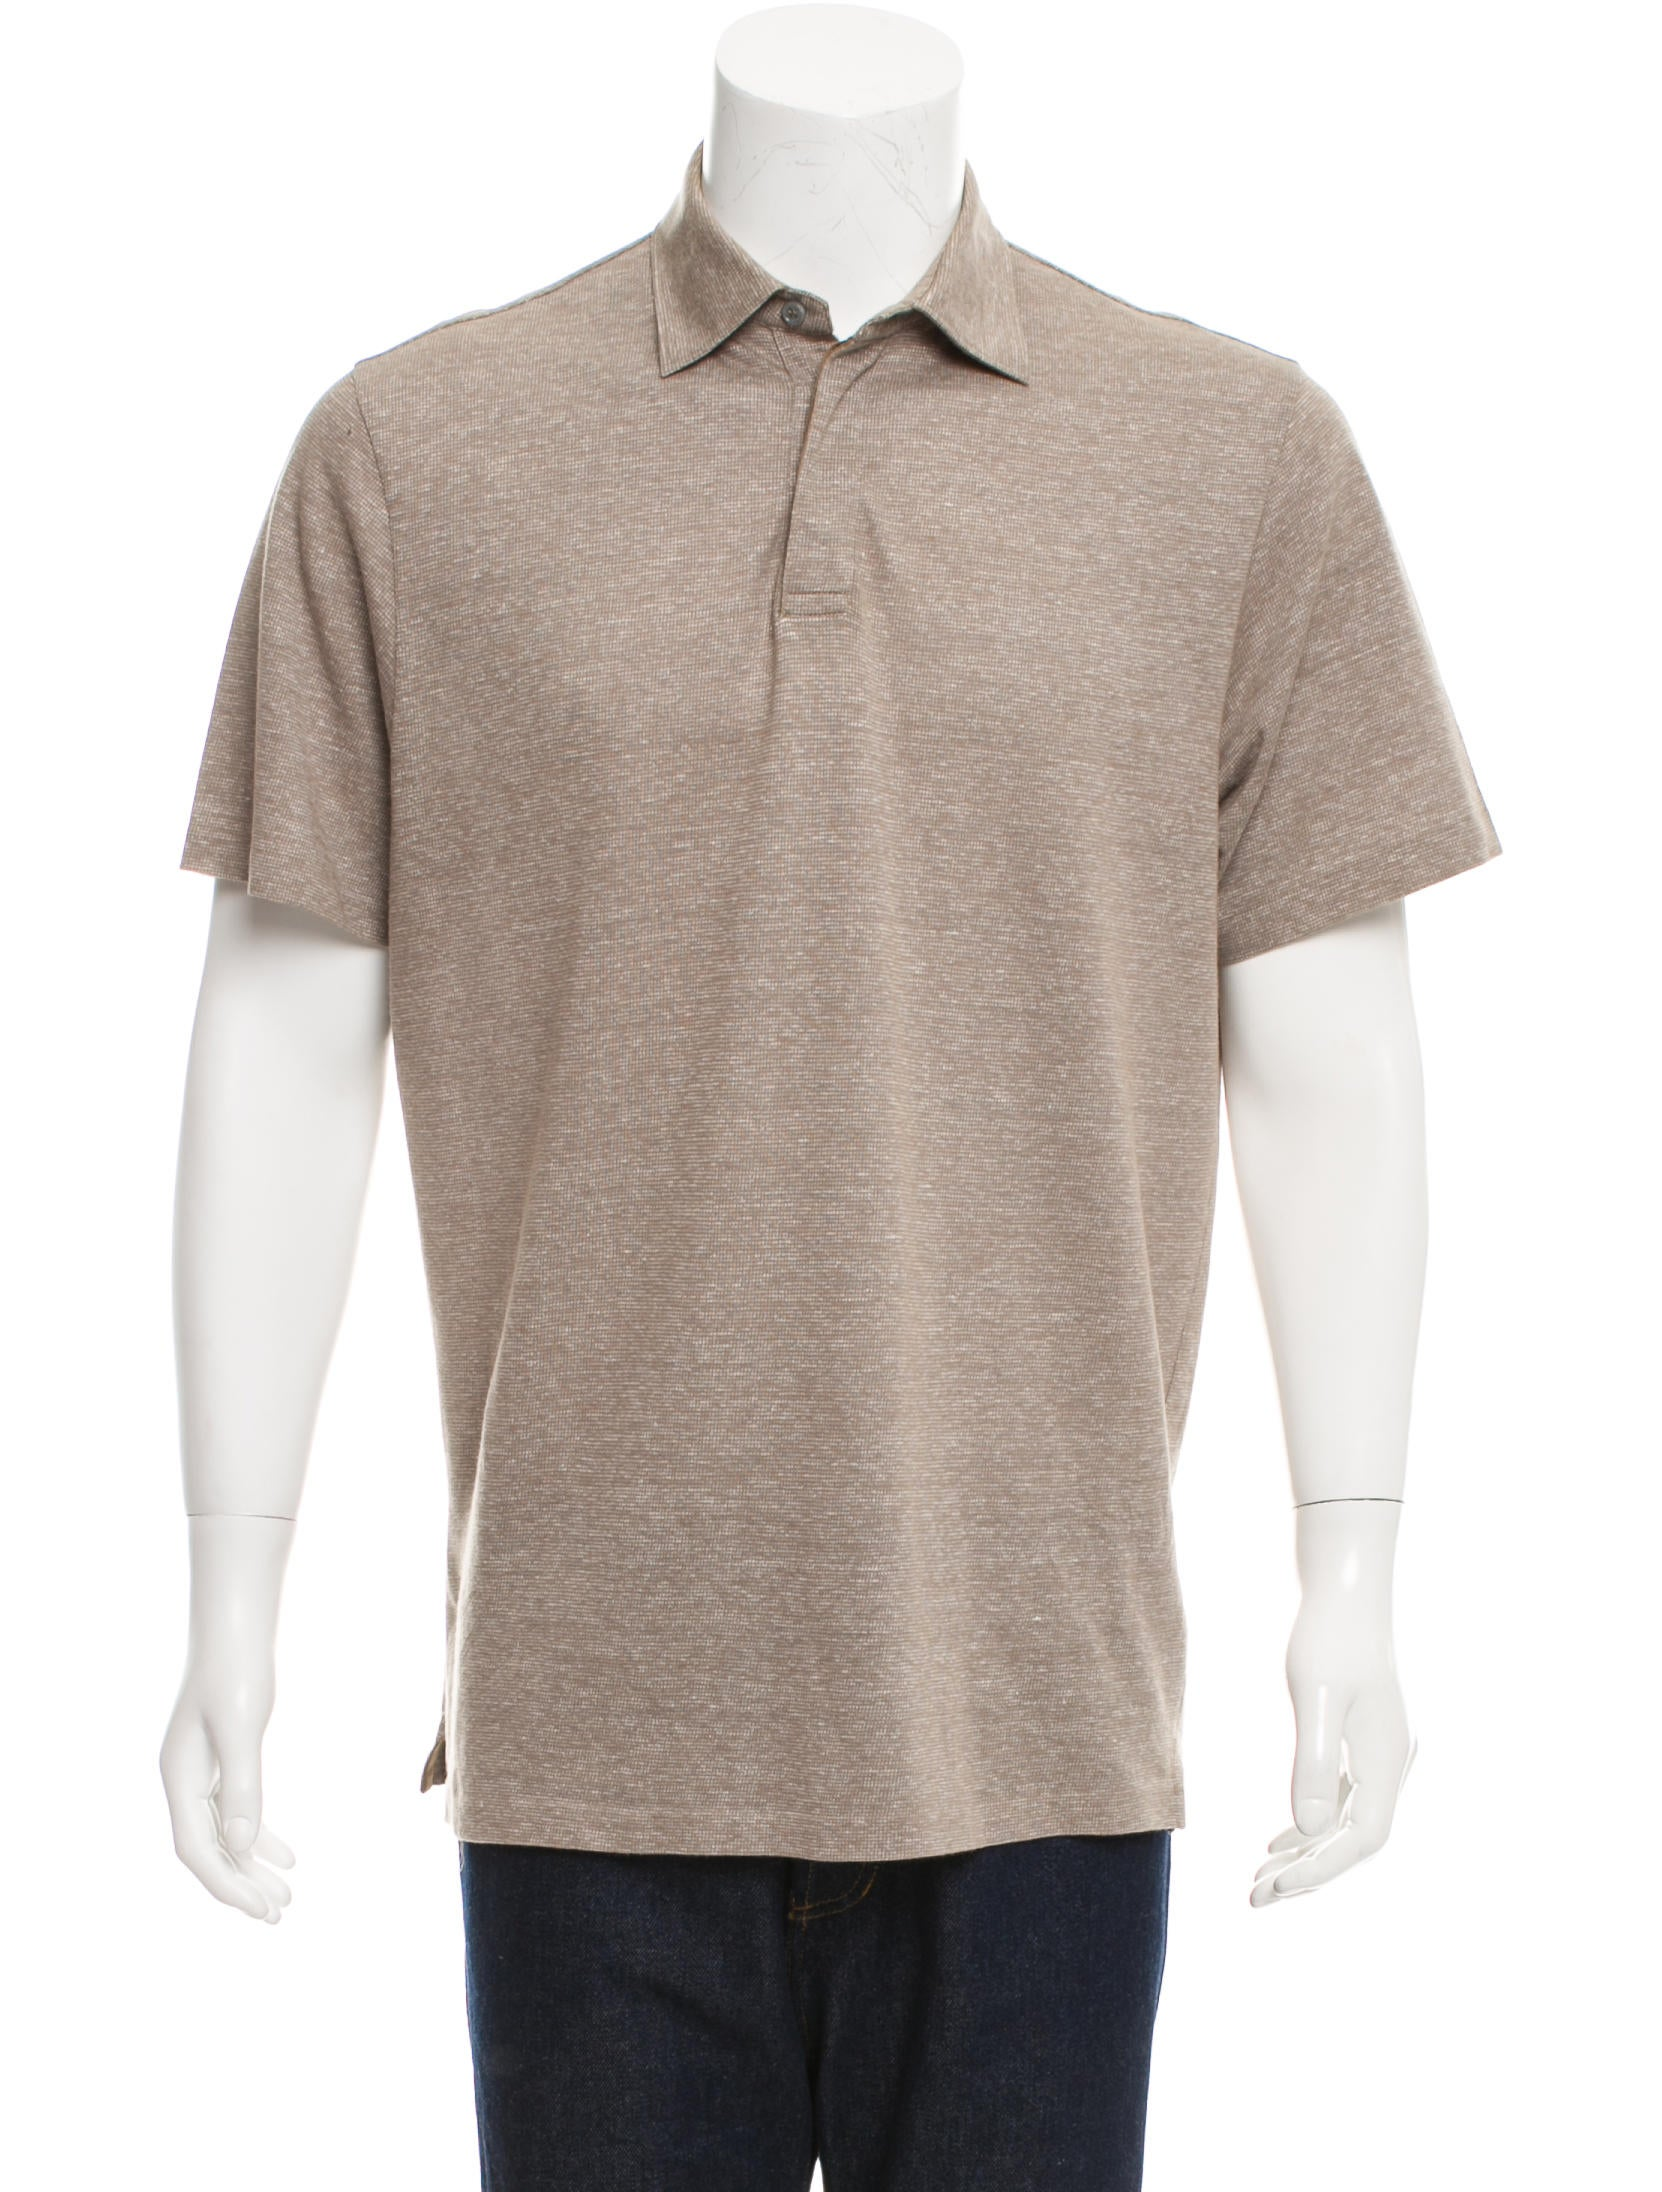 Ermenegildo Zegna Linen Blend Polo Shirt Clothing